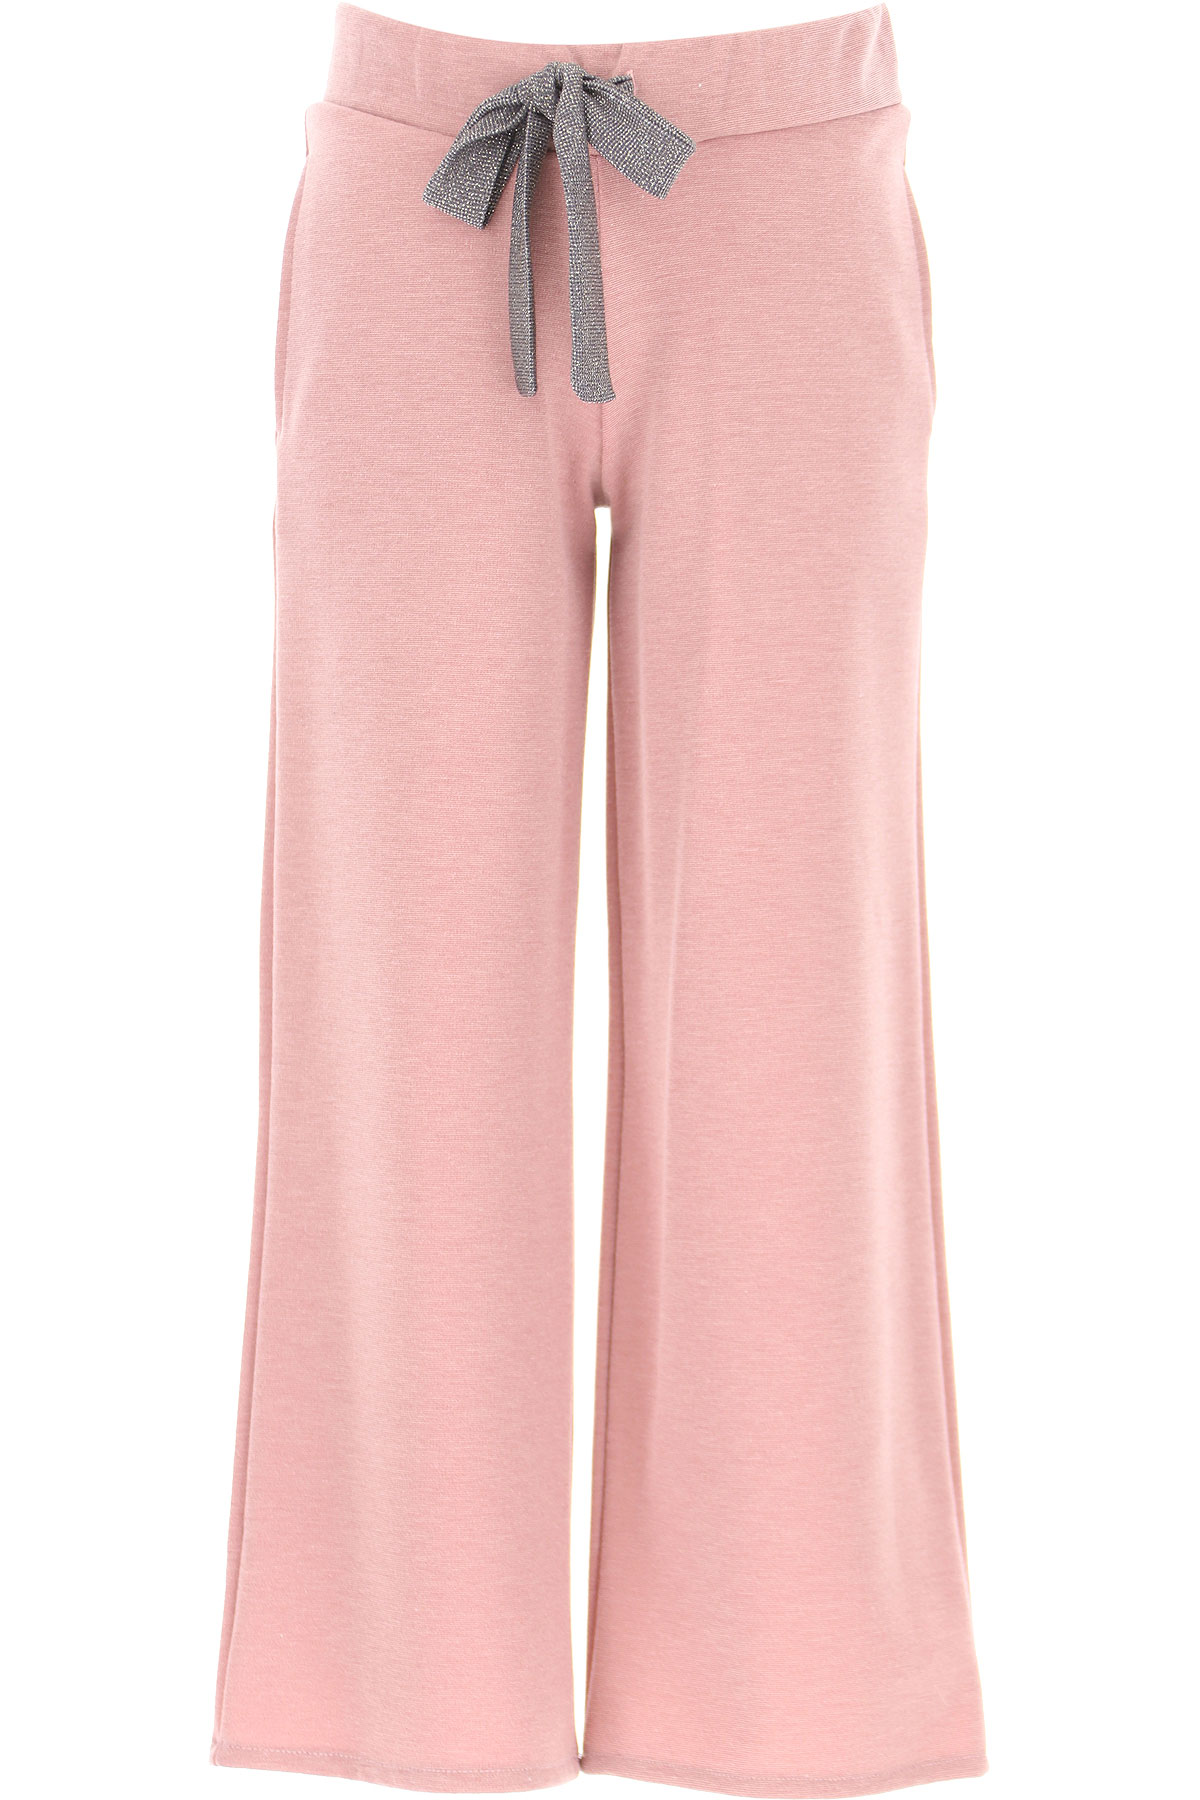 Vicolo Kids Pants for Girls On Sale, Pink Lurex, polyester, 2019, 14Y 4Y 6Y